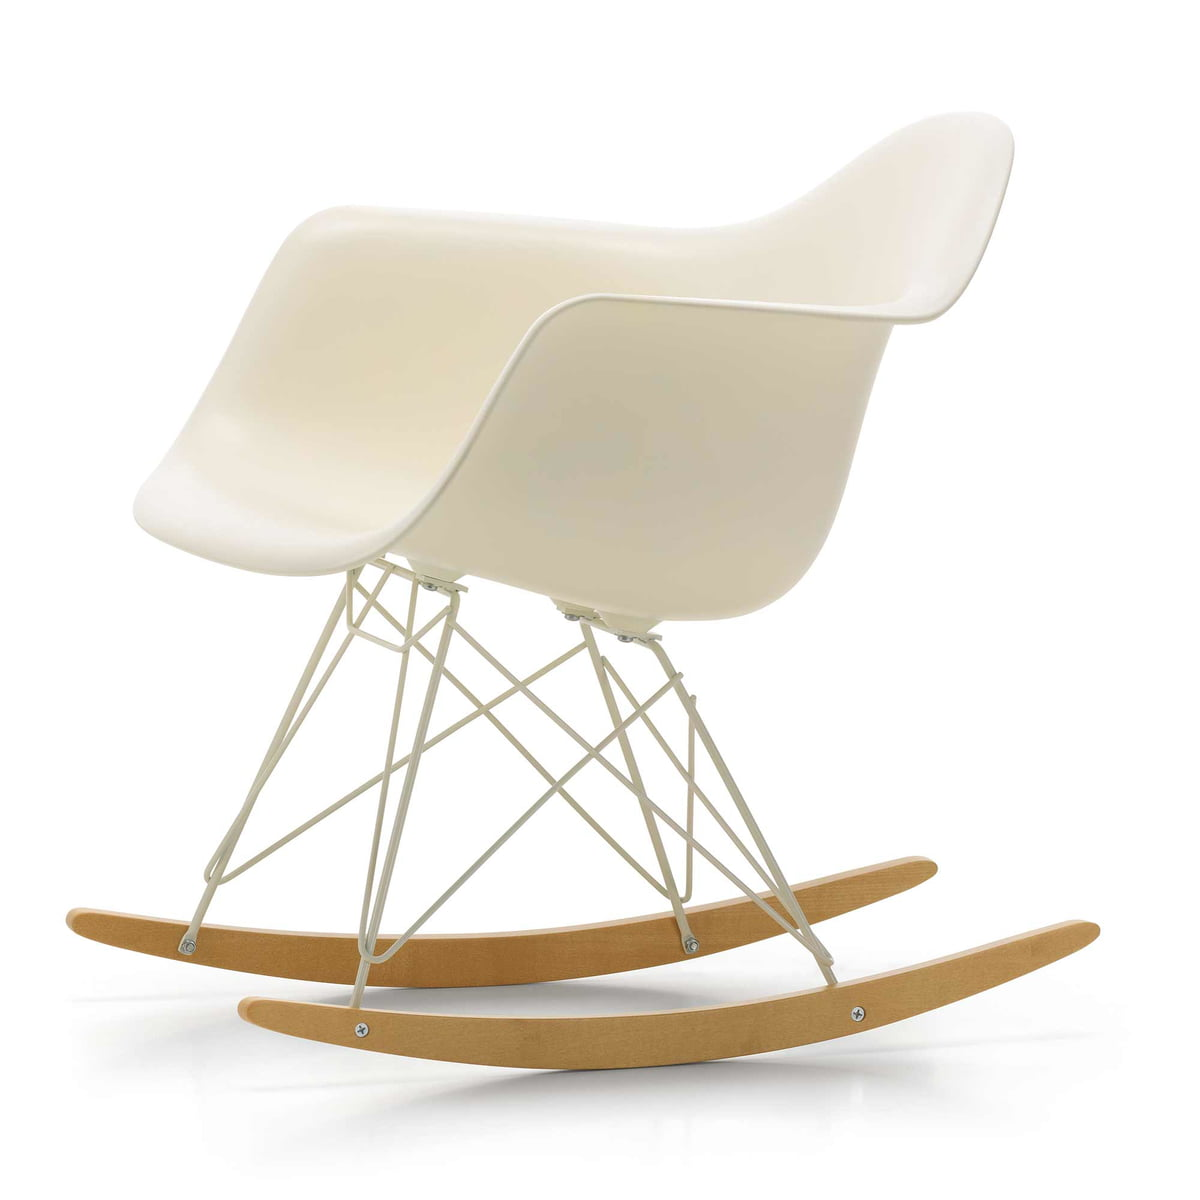 Rar rocking armchair by vitra in the shop - Rocking chair vitra ...